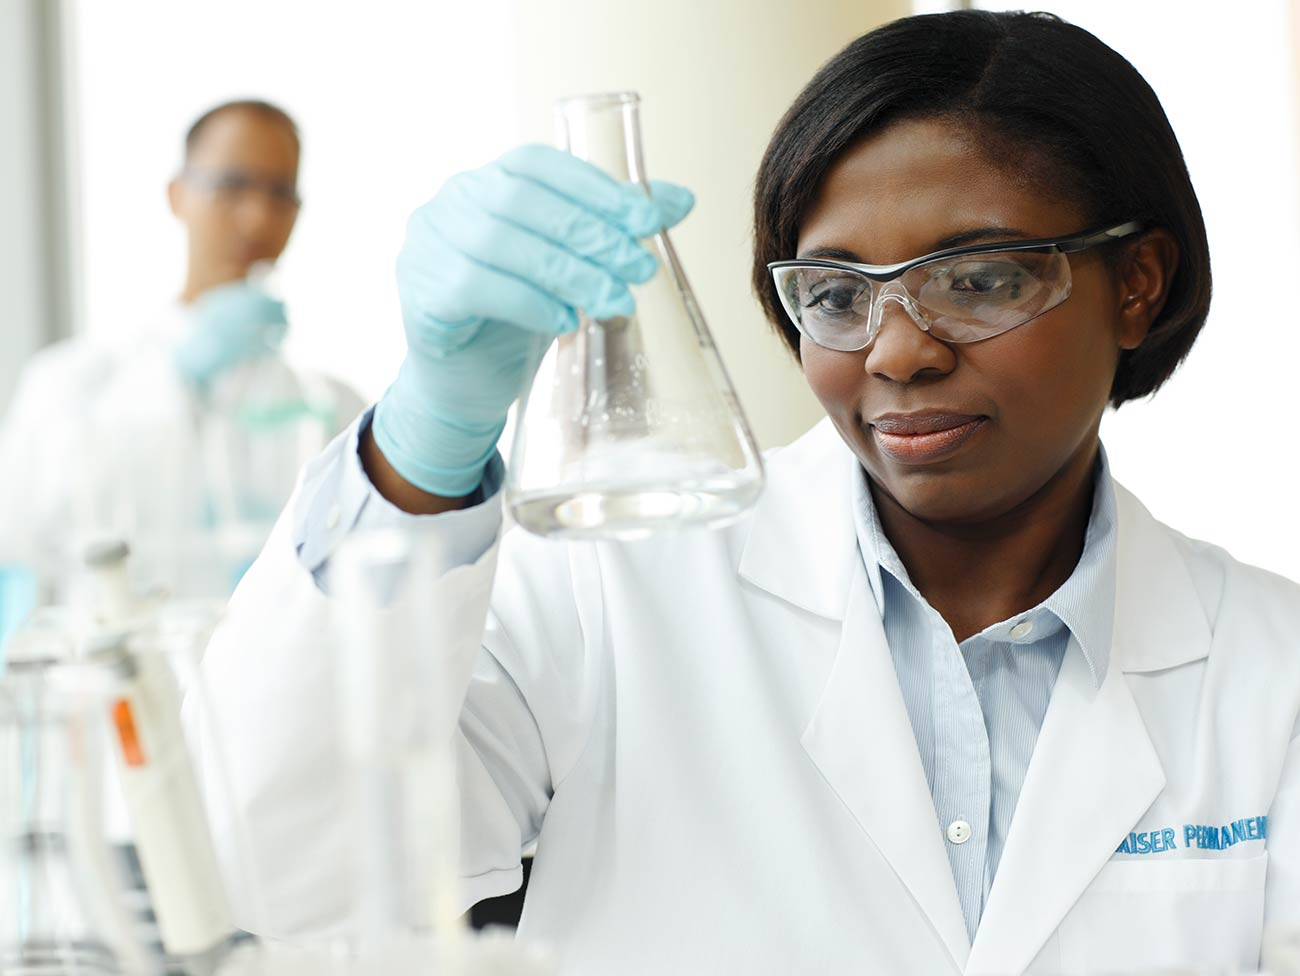 Female African American researching in a laboratory.